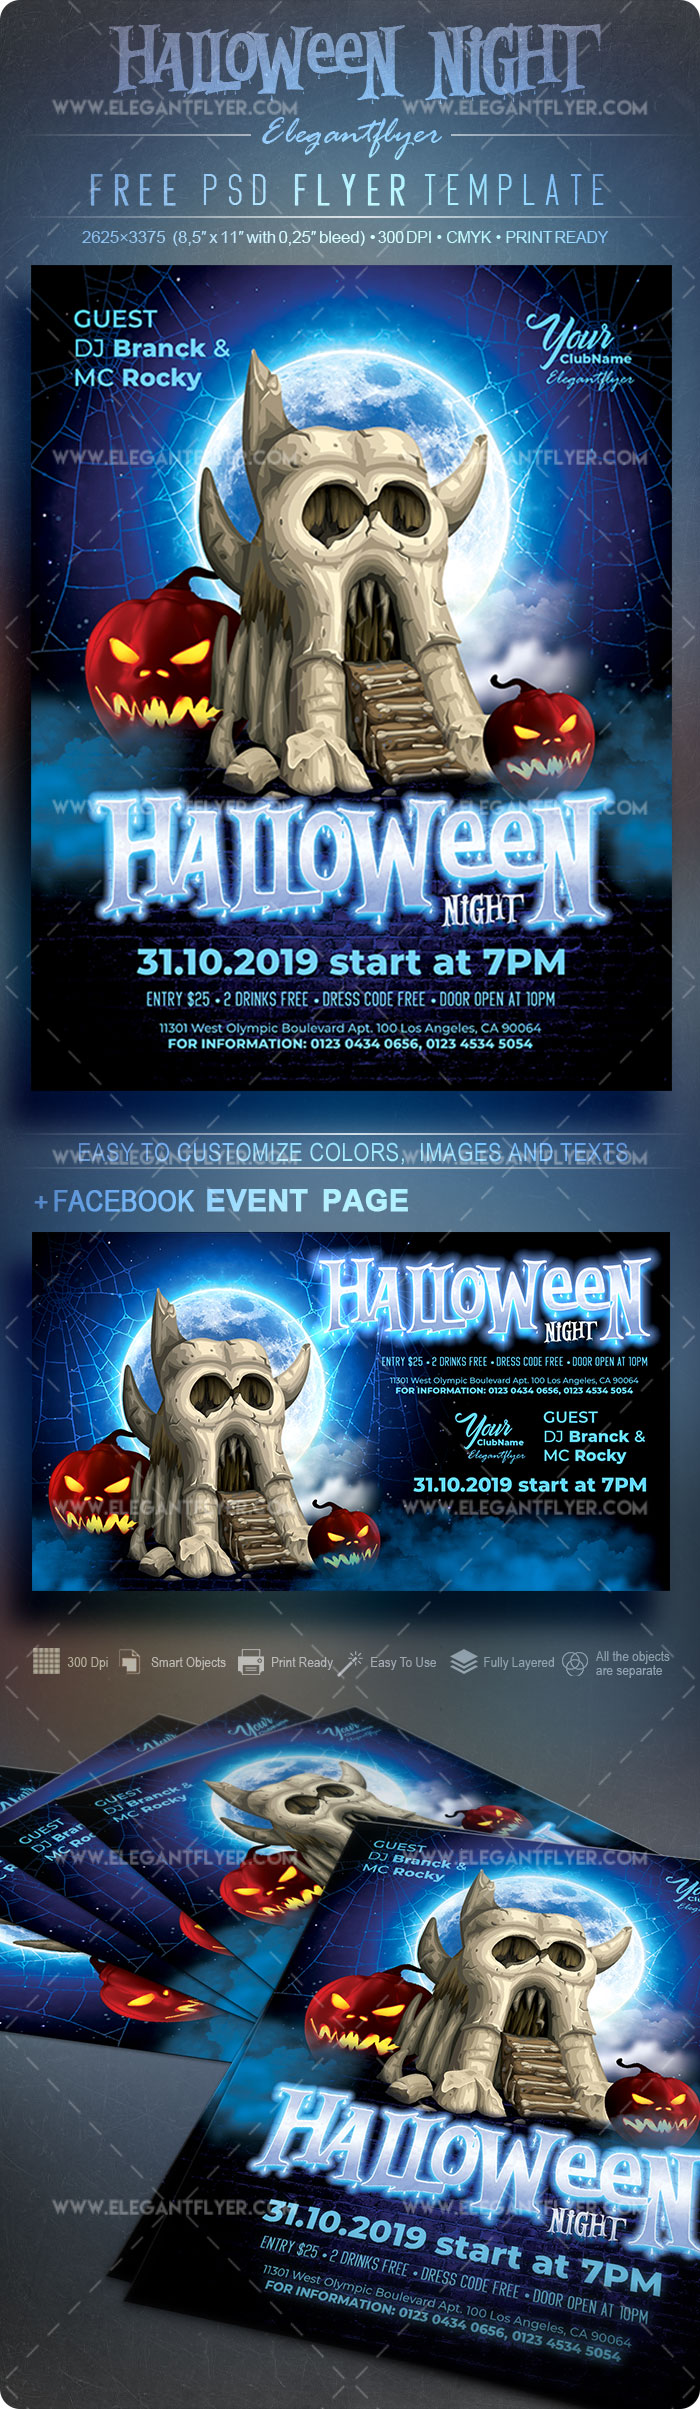 Halloween Night V02 – Free Flyer PSD Template